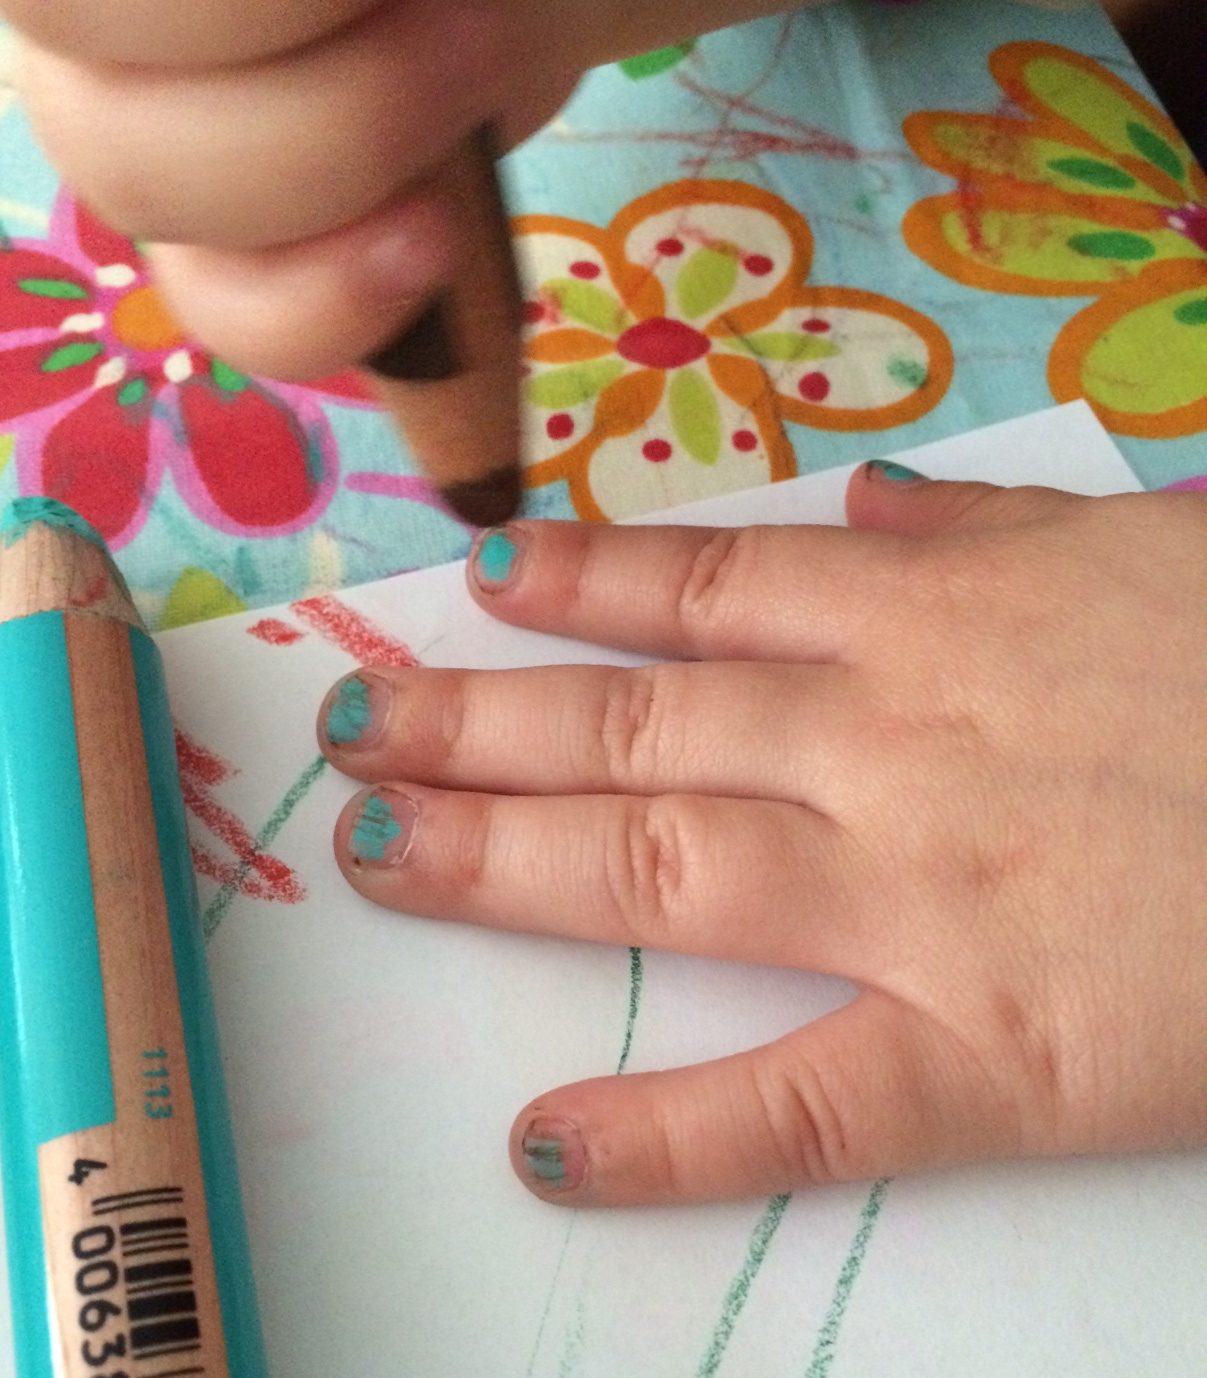 lacke in farbe und bunt essie mint candy apple with freckles marzipany. Black Bedroom Furniture Sets. Home Design Ideas